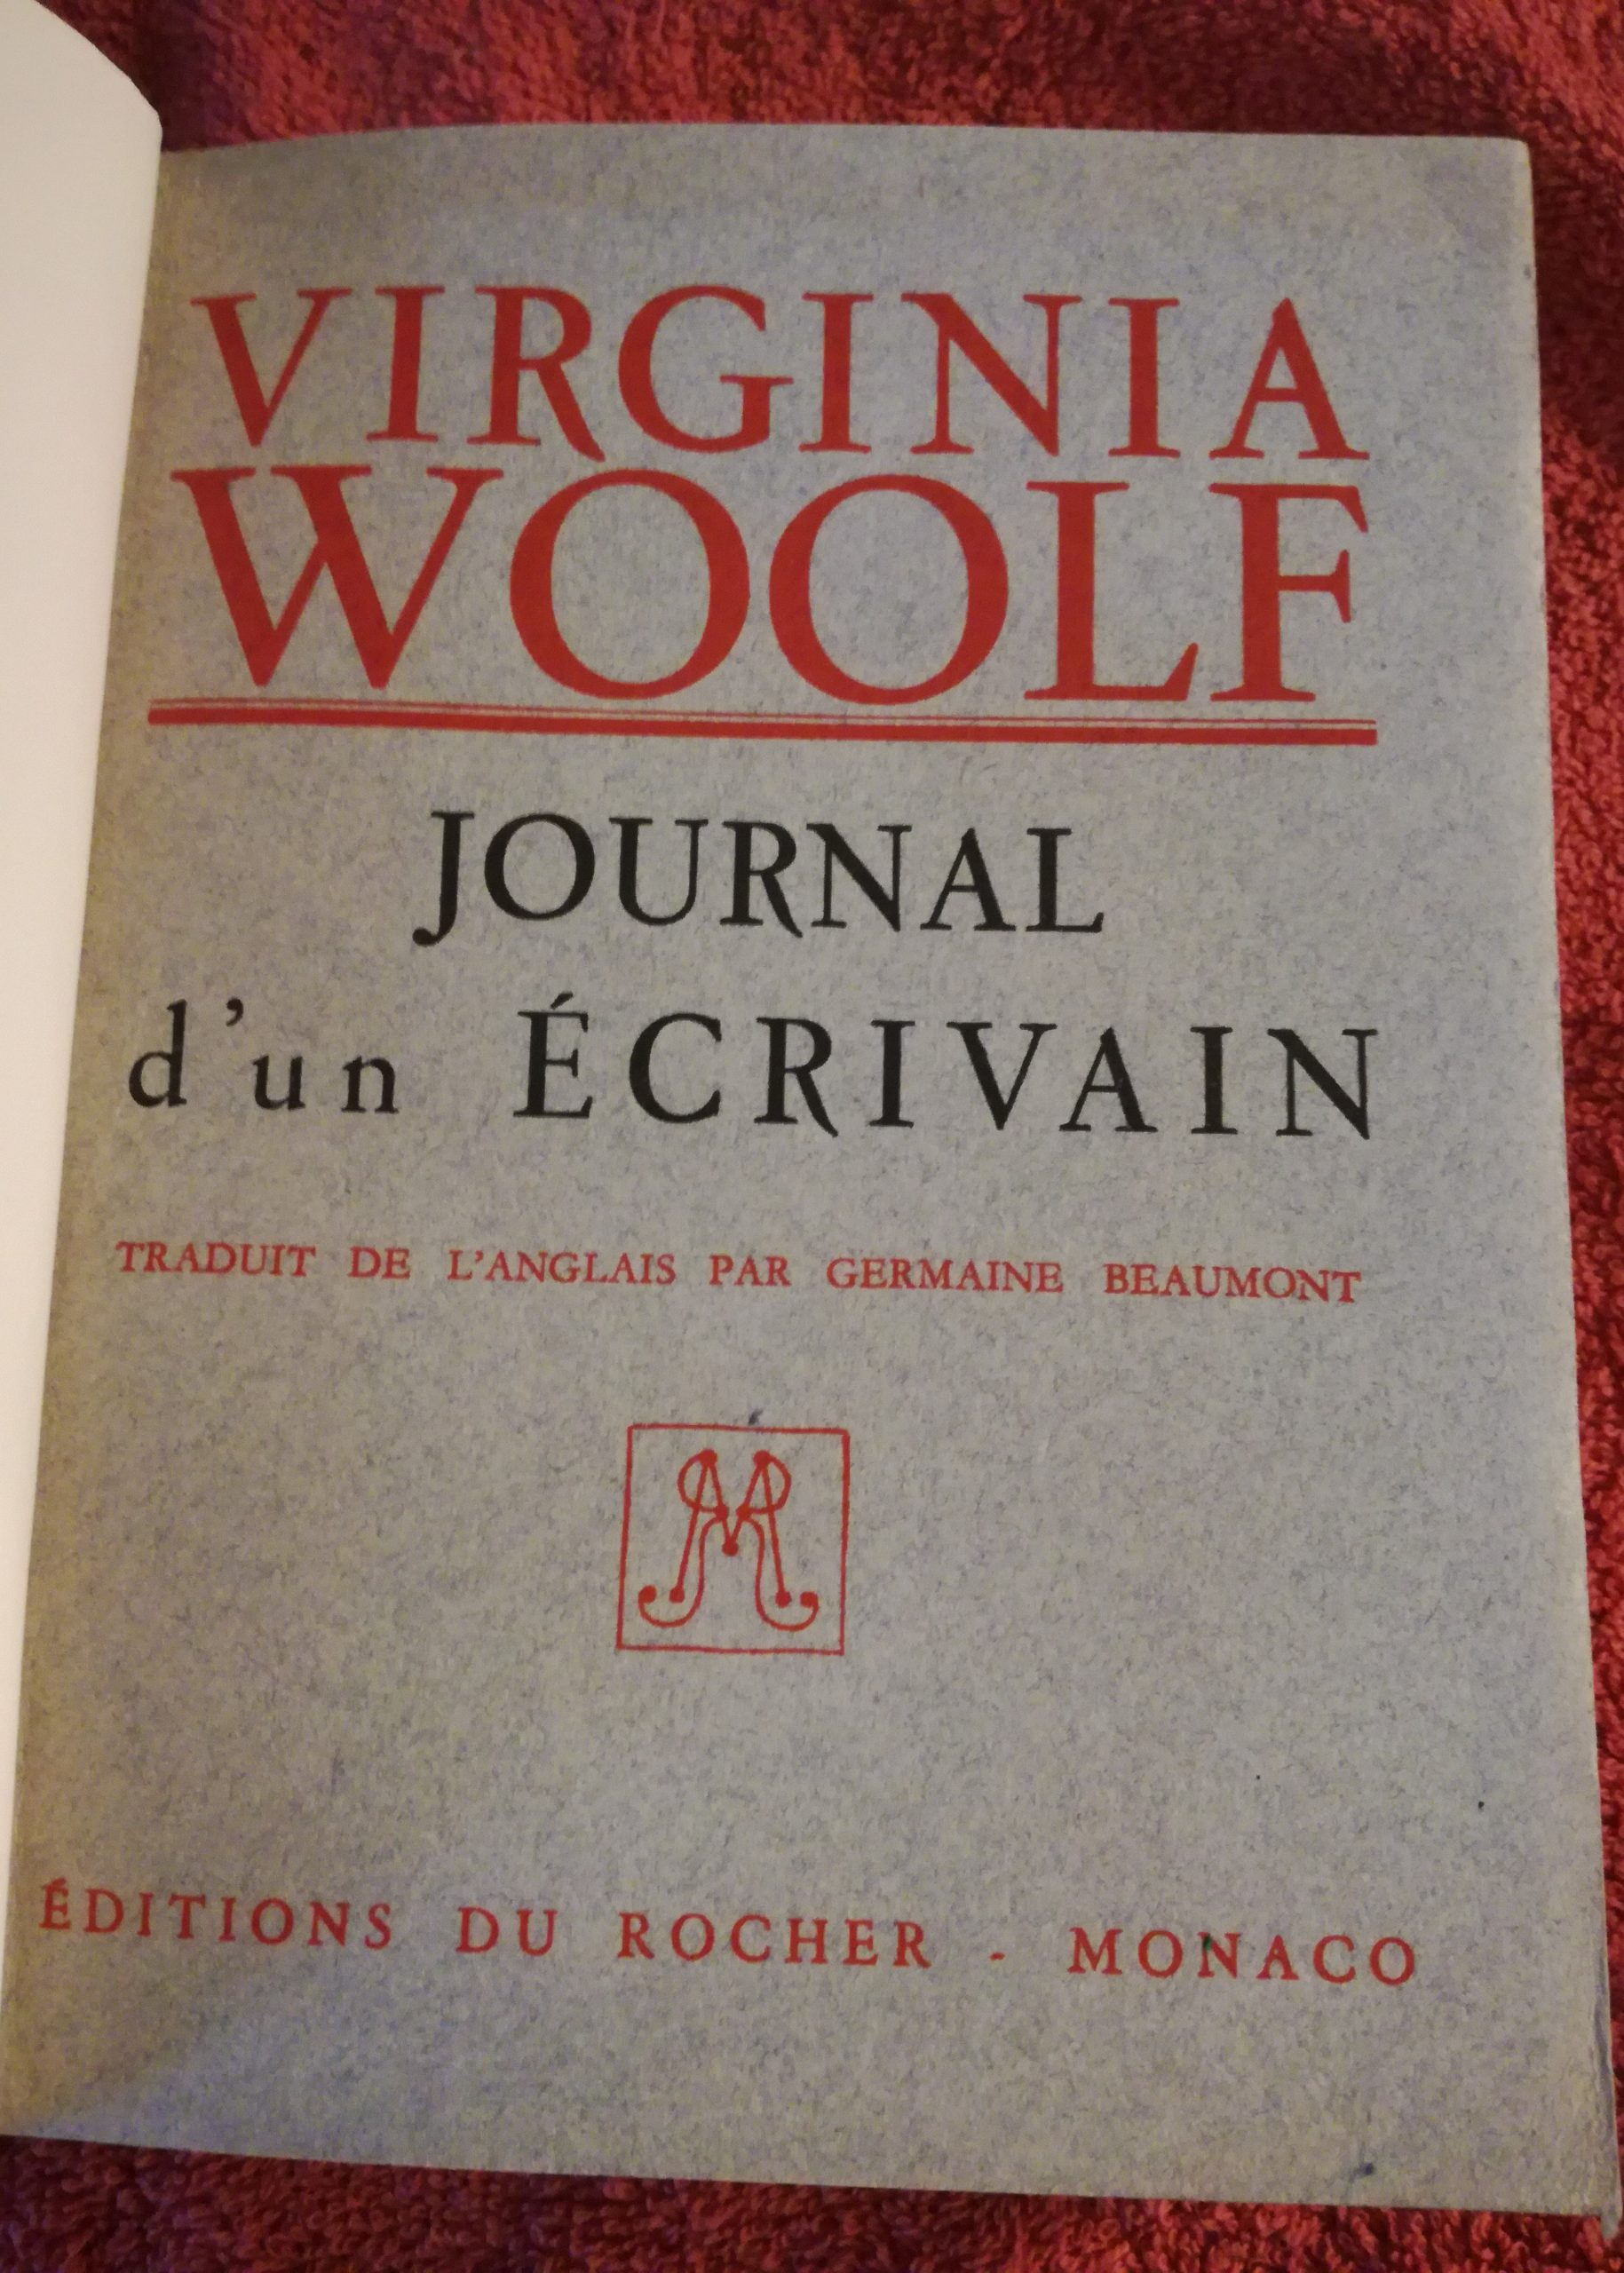 virginia woolf, reliure, les ames papier, sarrant